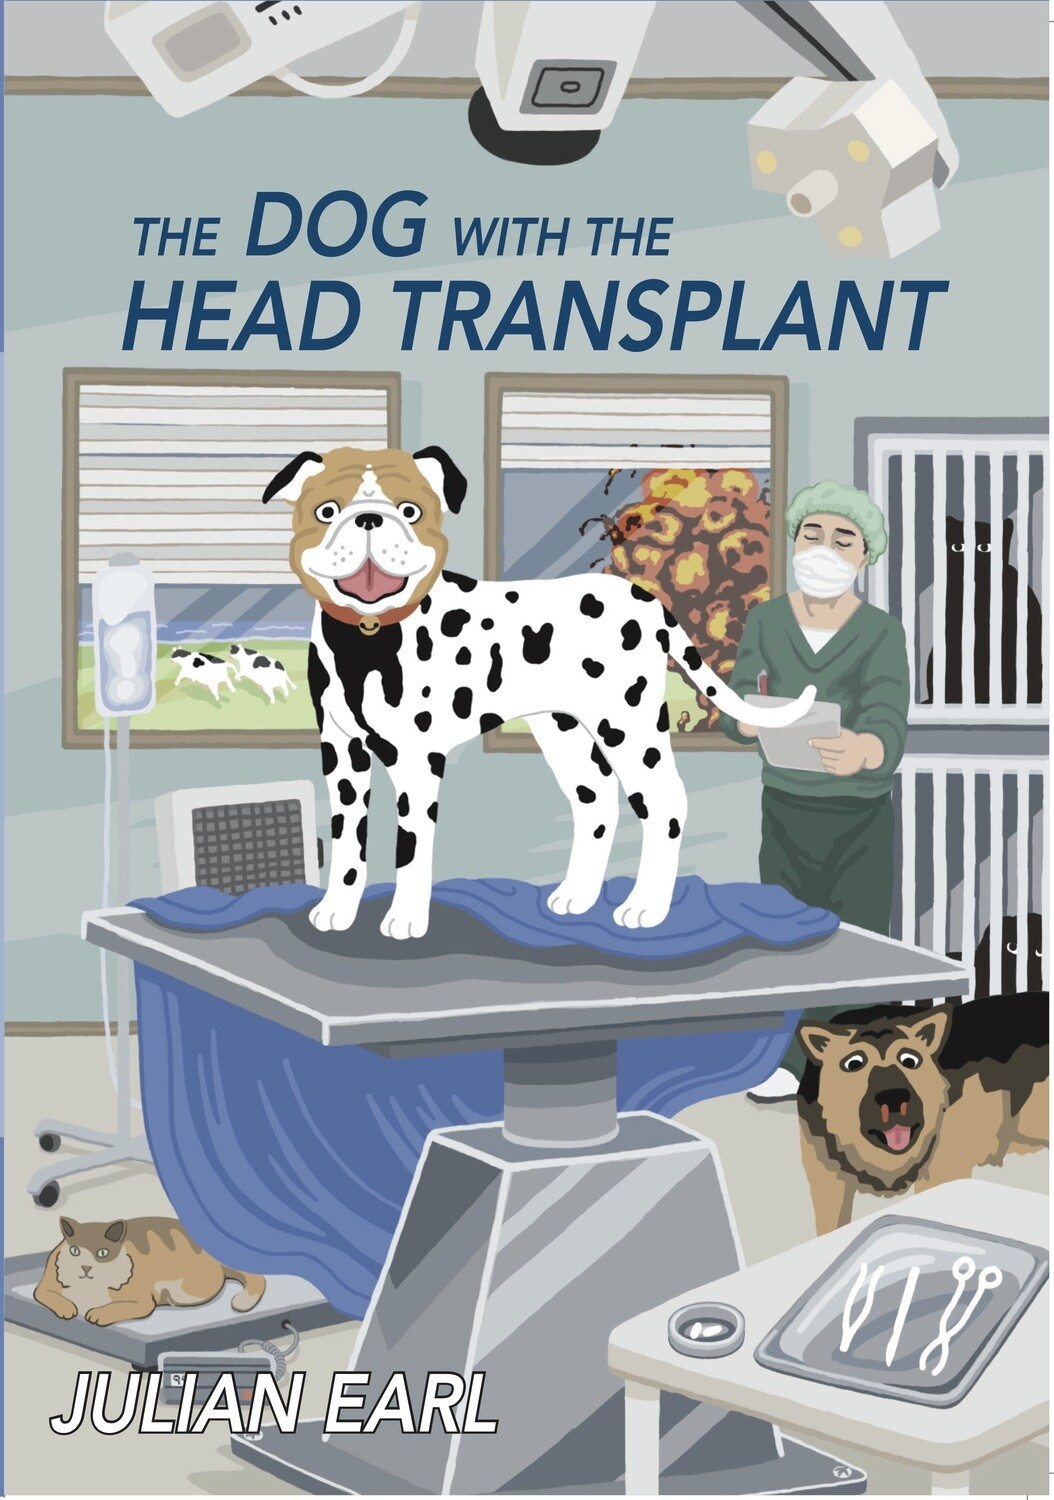 The Dog with the Head Transplant ( paperback edition)